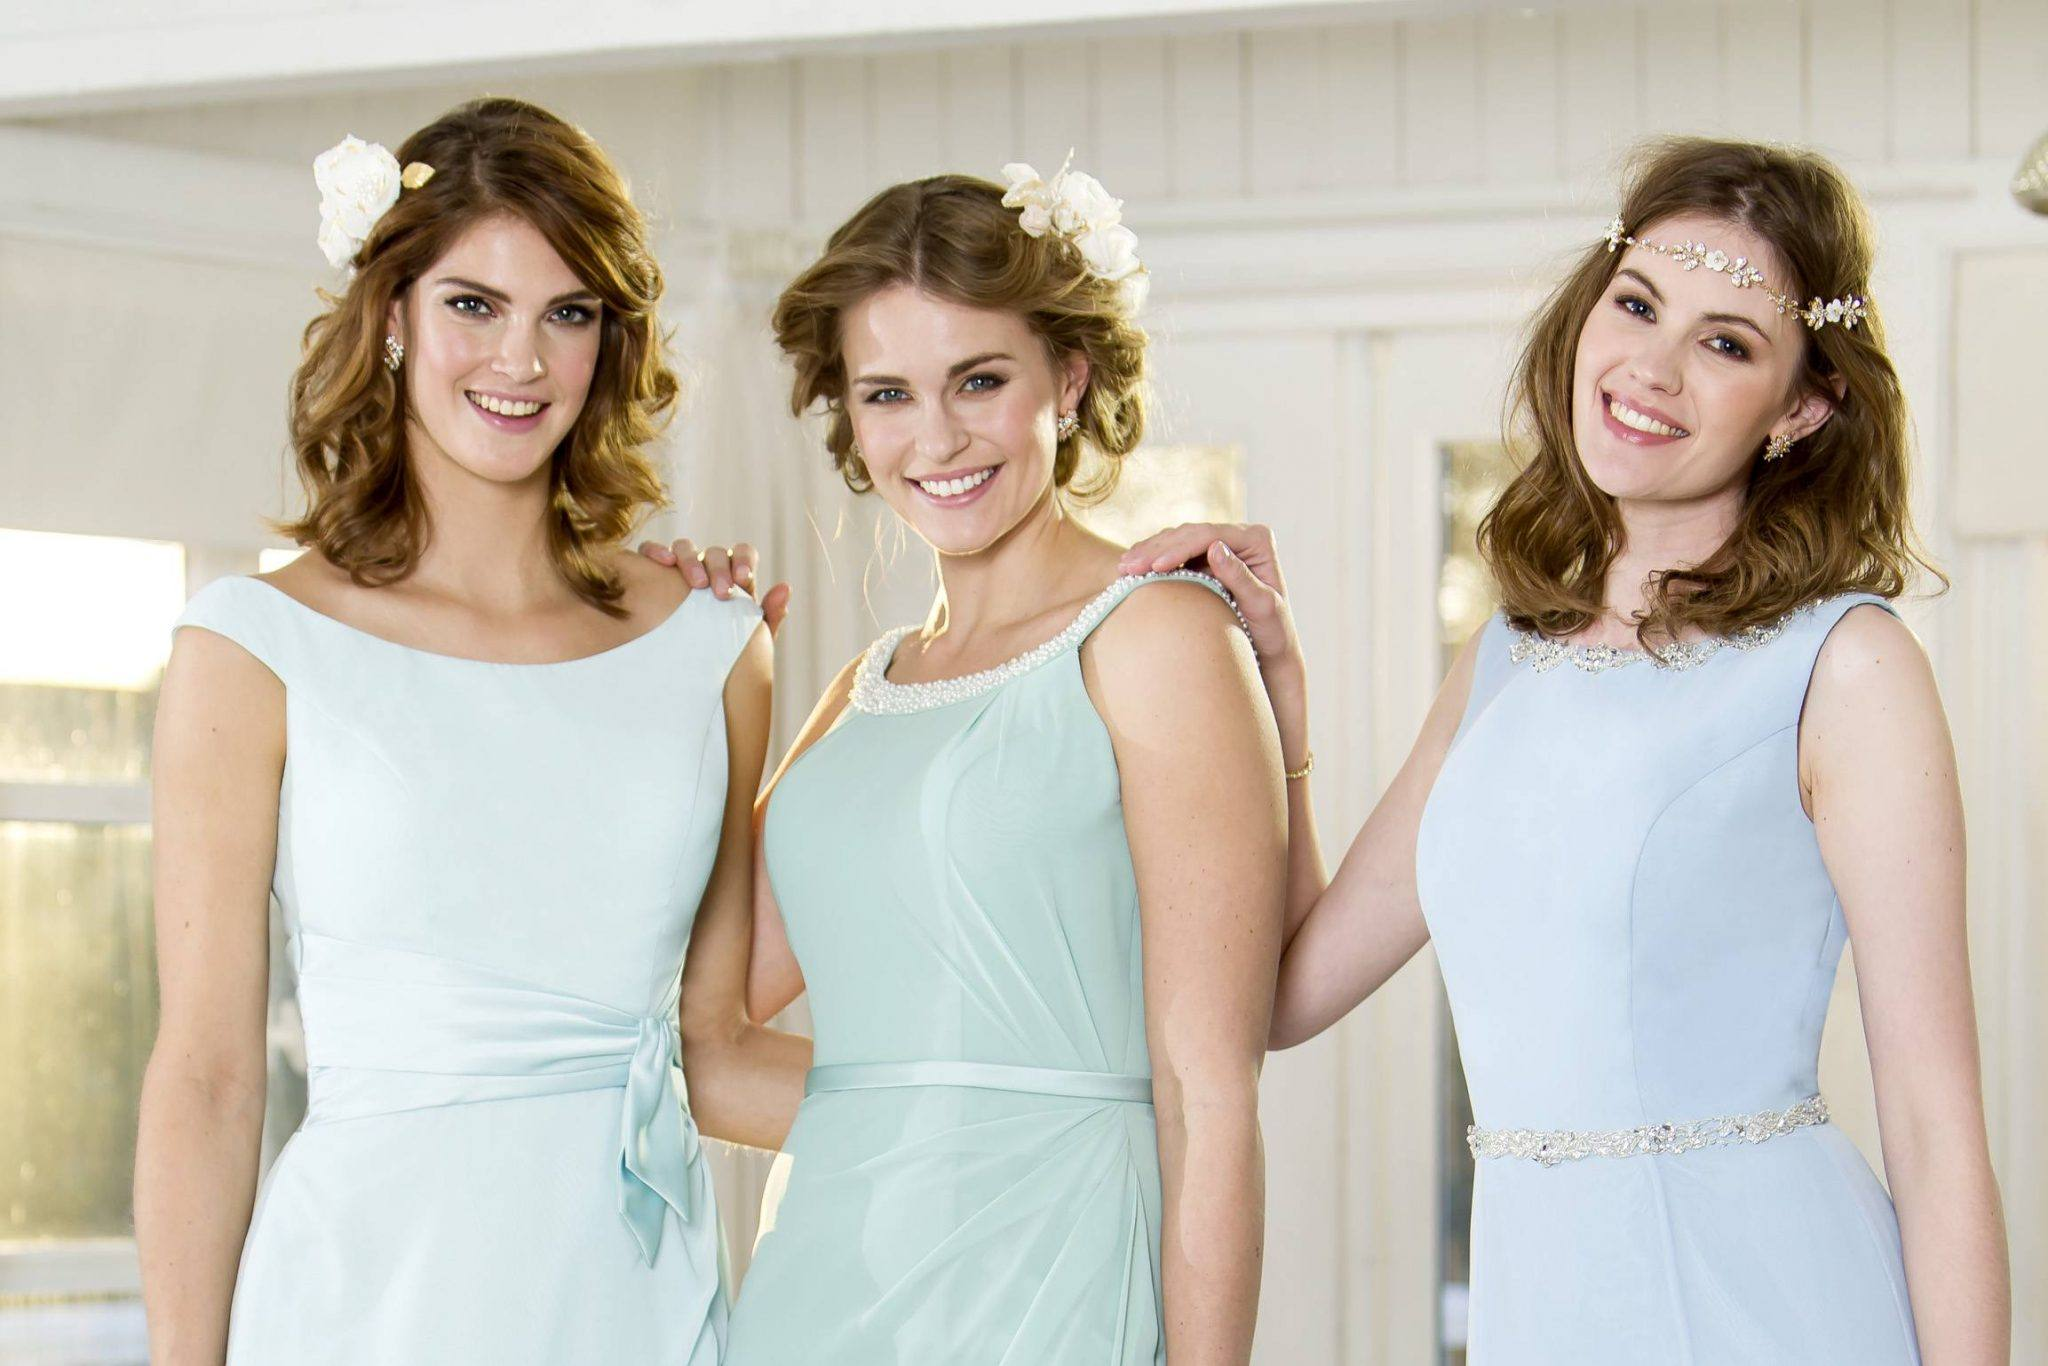 Bridesmaids- choosing the right dresses for your girls